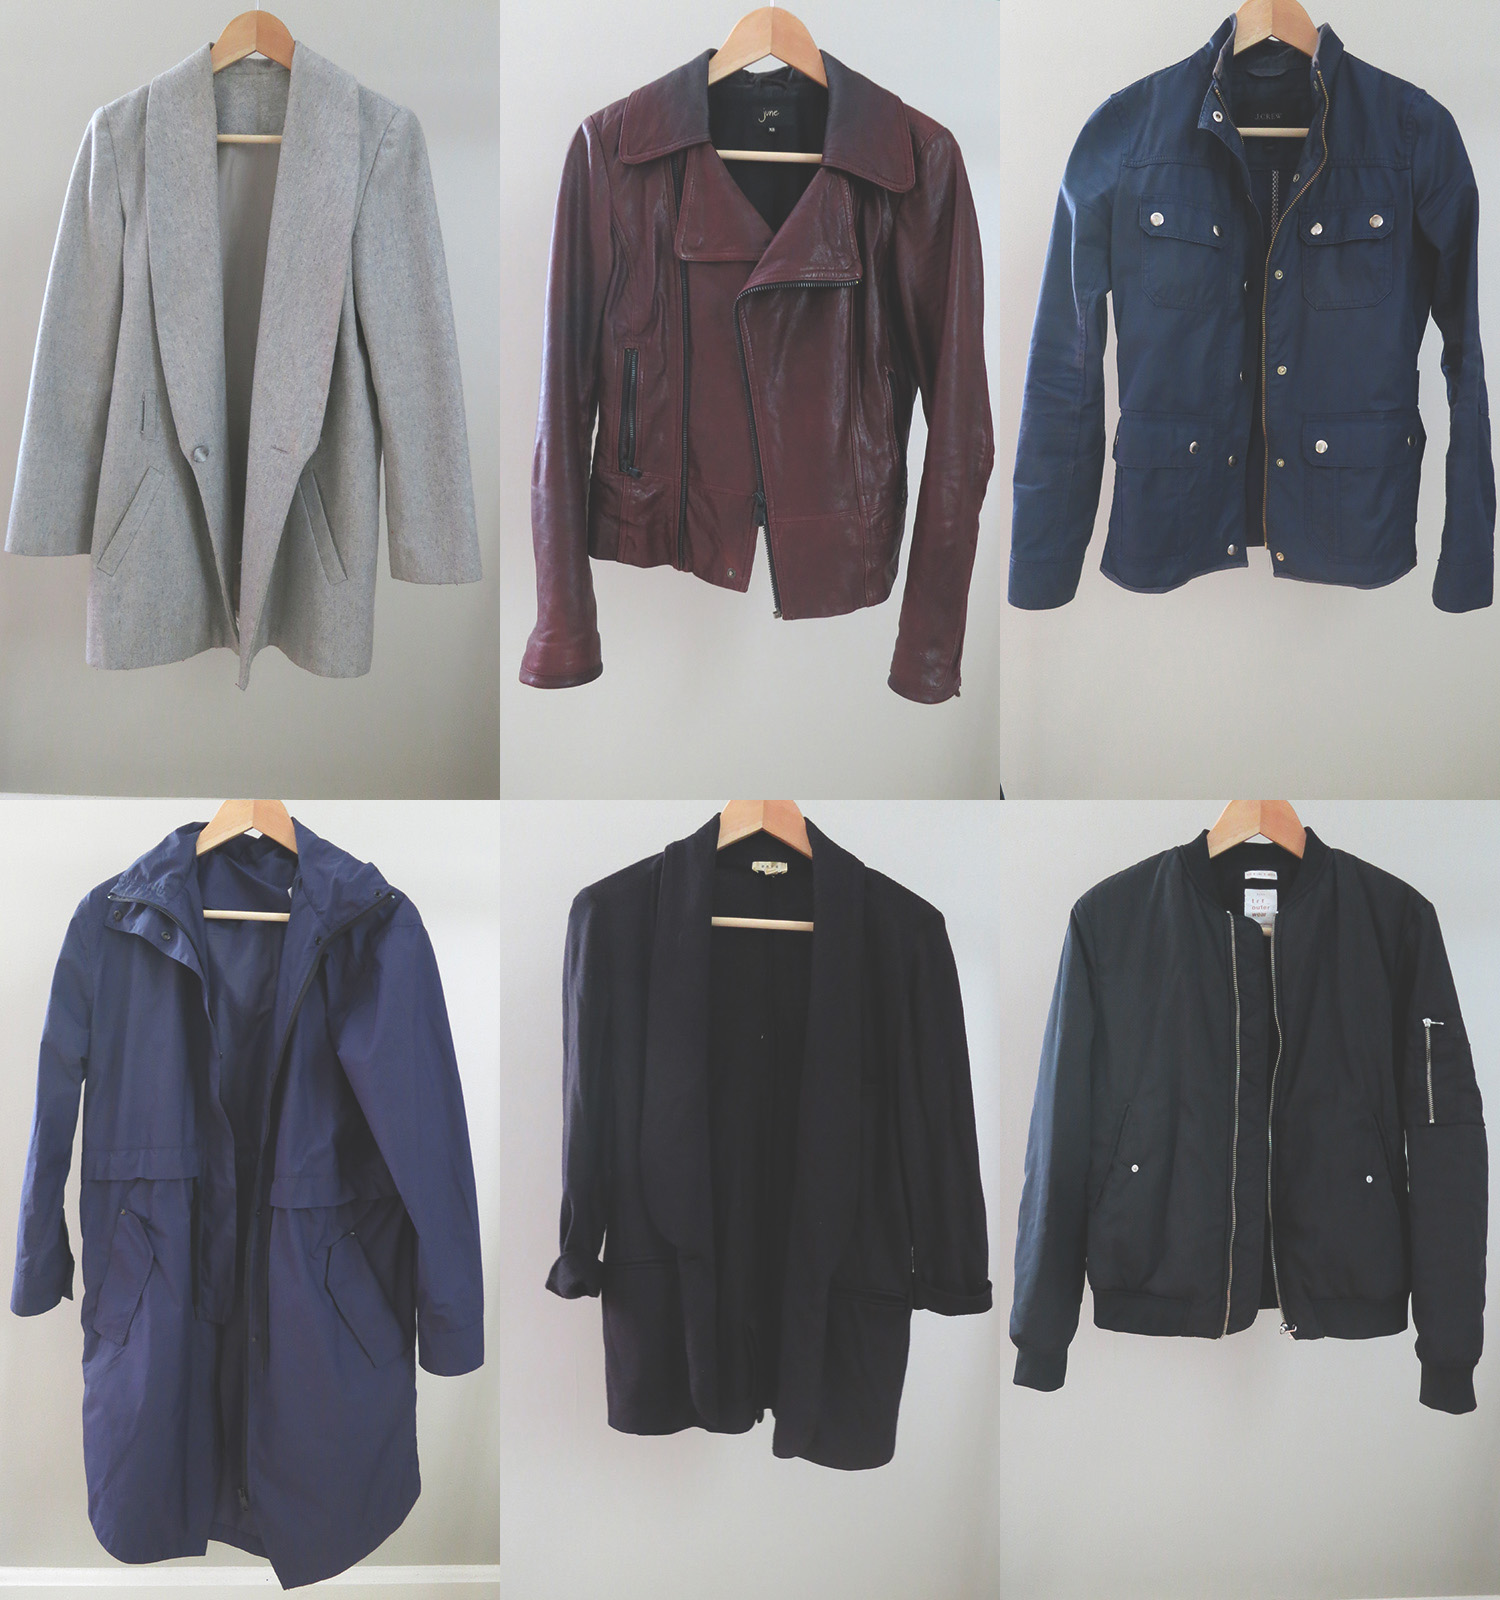 capsule_wardrobe_outerwear_spring2016